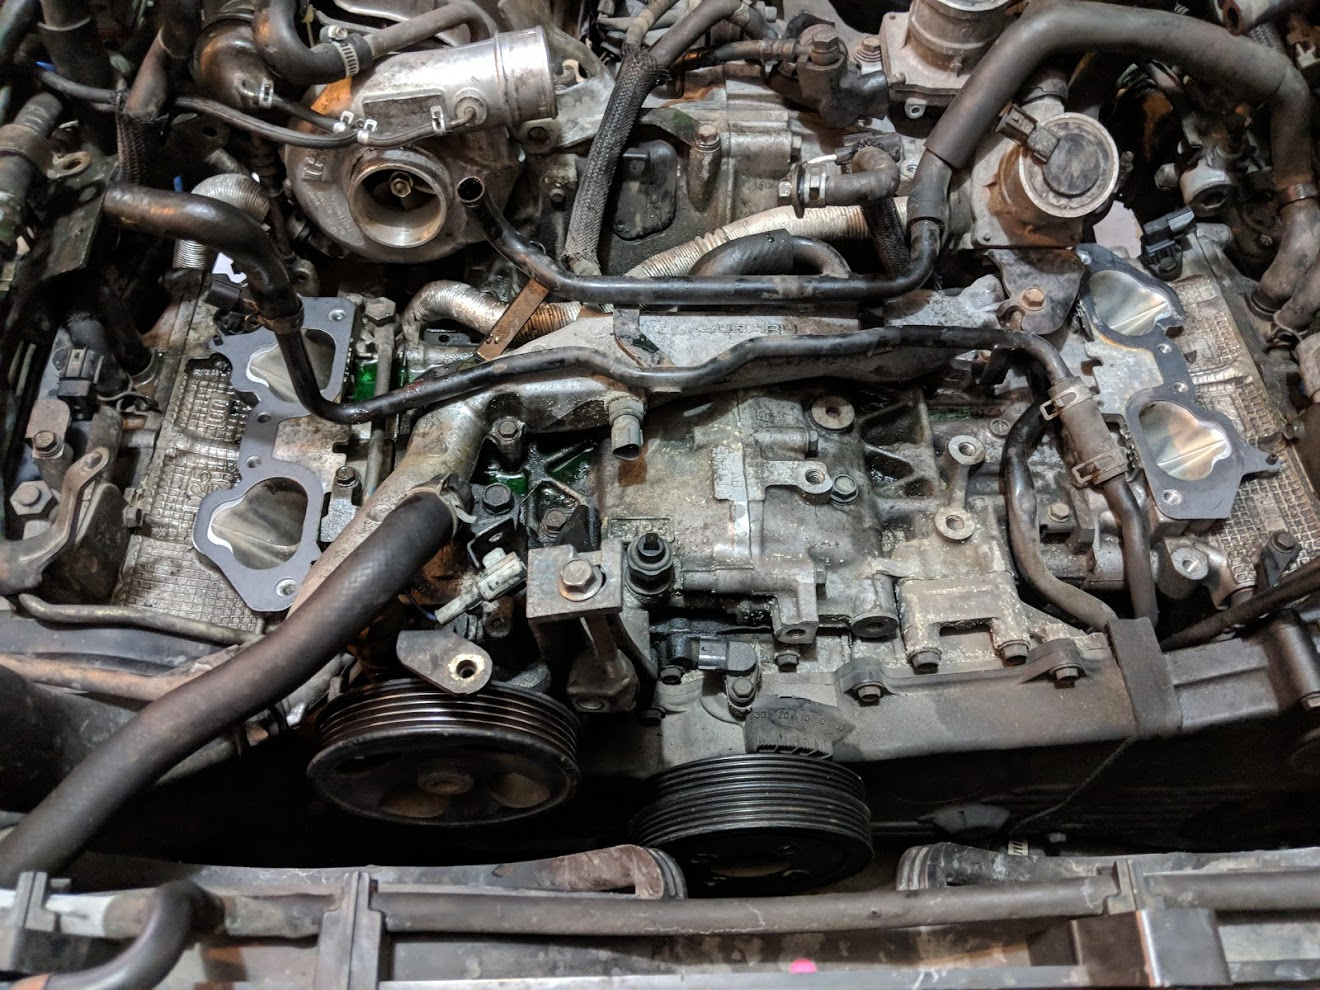 Now with the intake manifold completely loose you should be staring at this! All your hard work was worth it! This also shows the the locations of all the sensors and and bolt holes of the intake manifold.